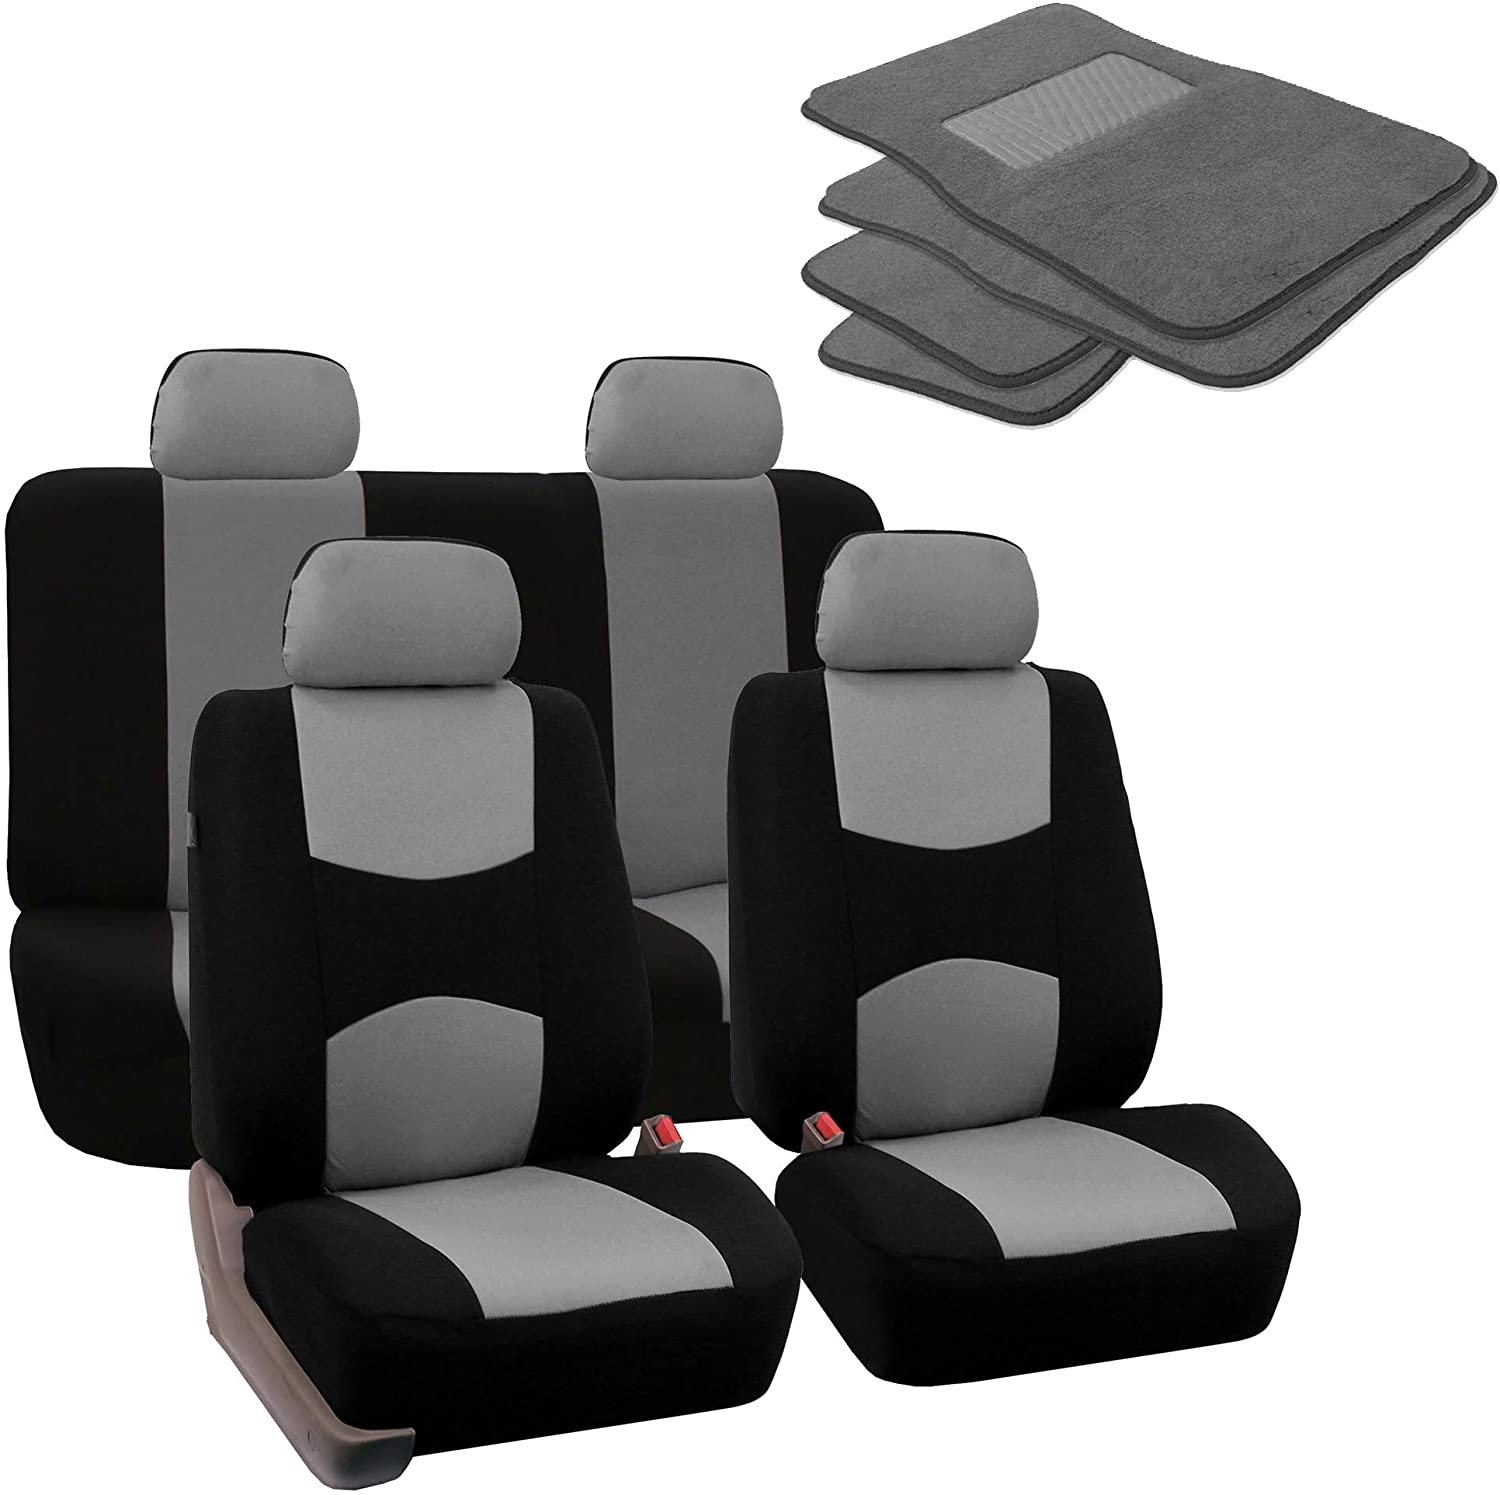 FH Group FB050114 + F14403 Flat Cloth Seat Covers (Gray) Full Set – Universal Fit for Cars Trucks & SUVs